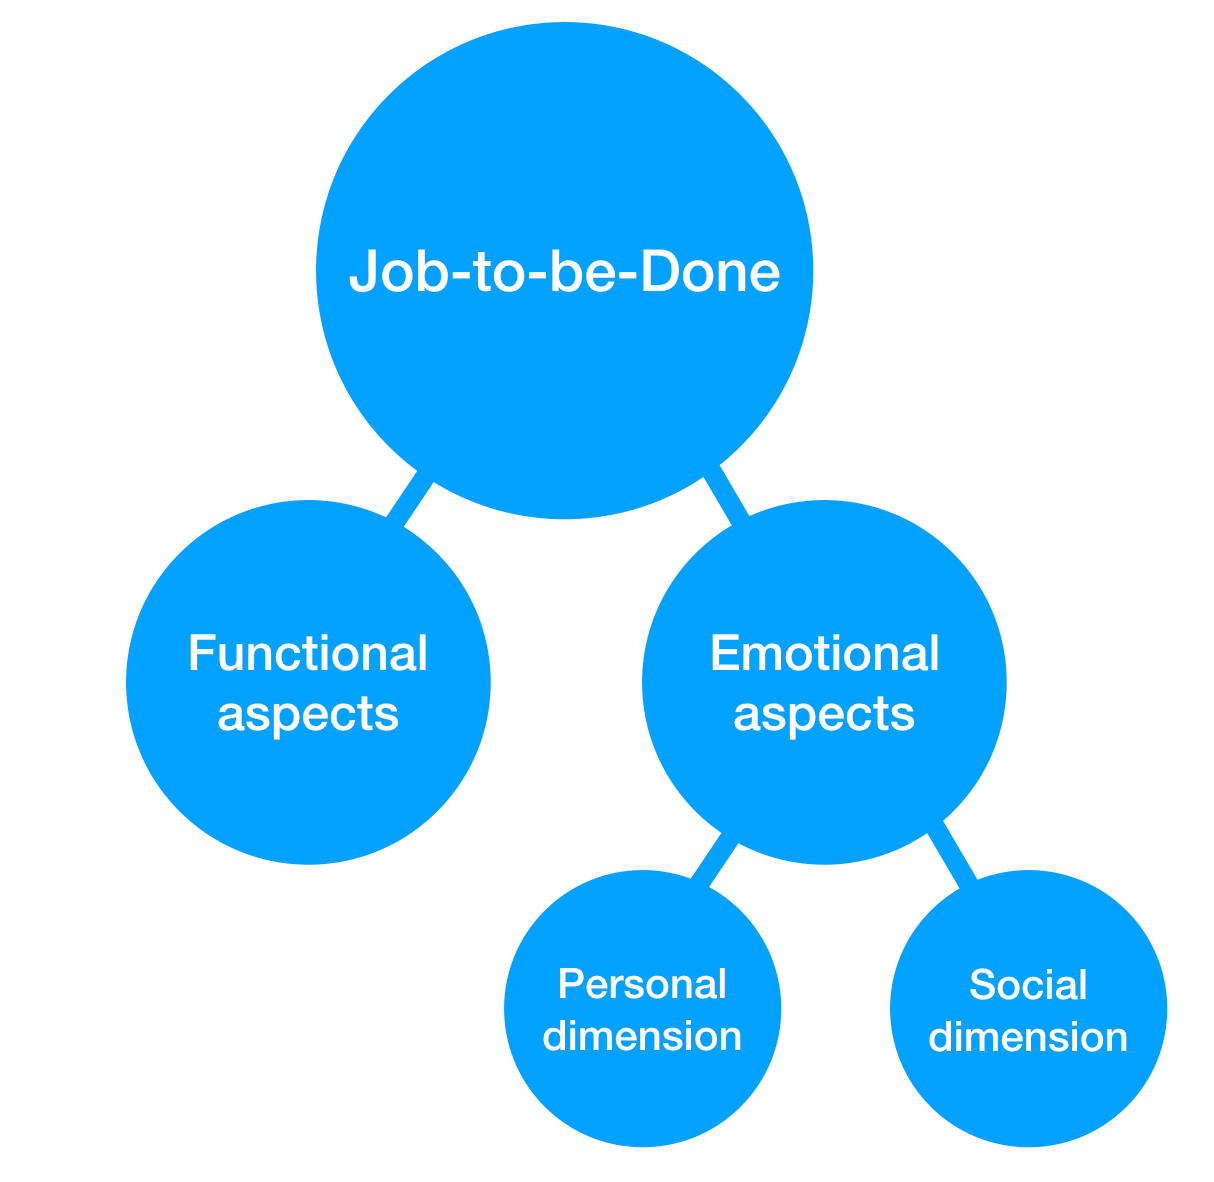 jobs-to-be-done anatomy